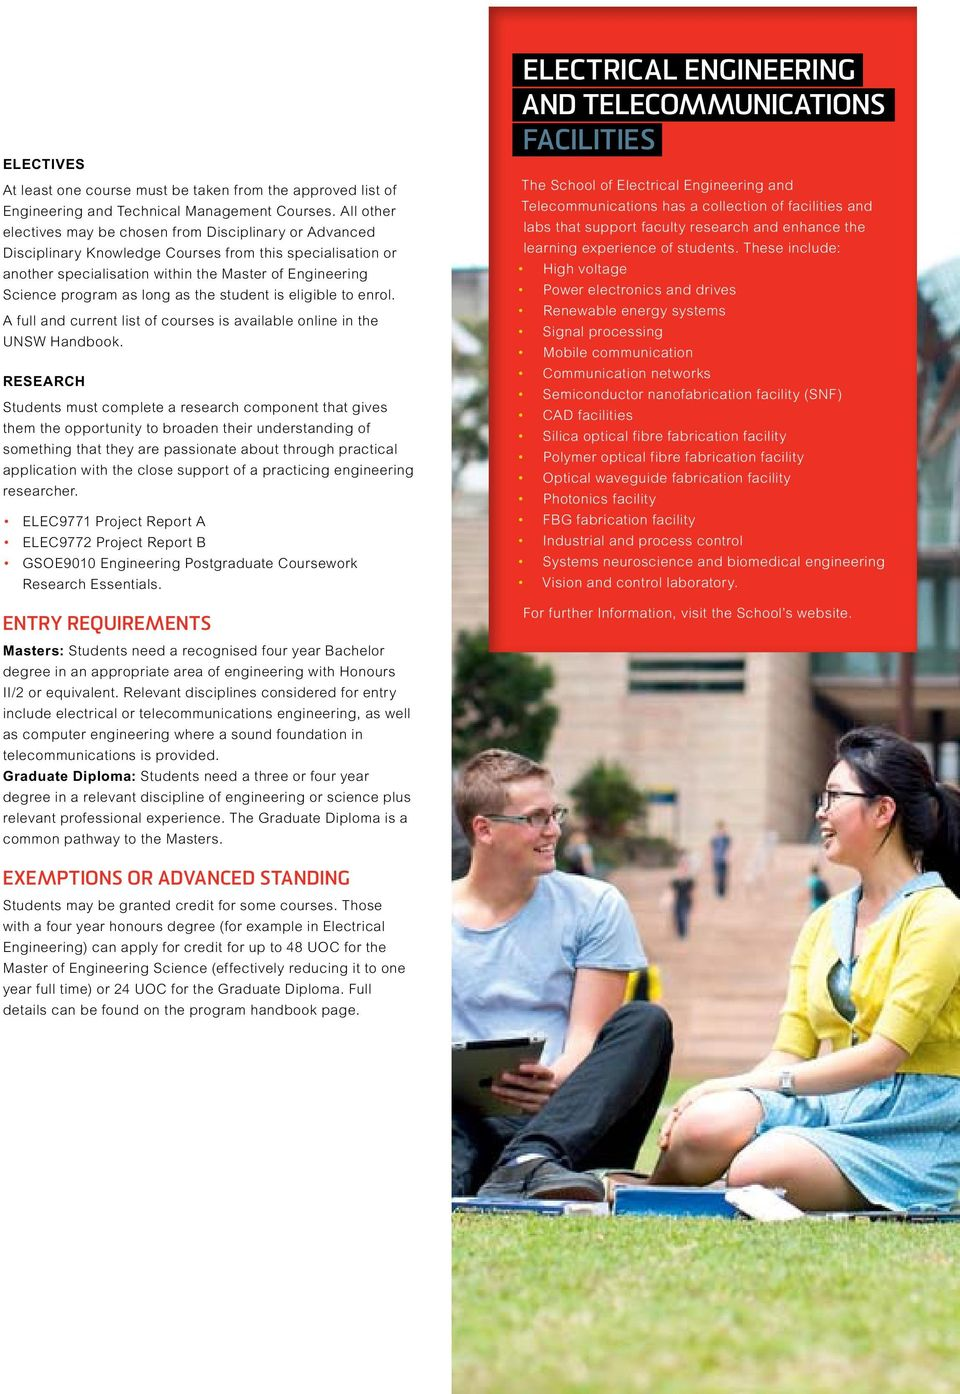 eligible to enrol. A full and current list of courses is available online in the UNSW Handbook.